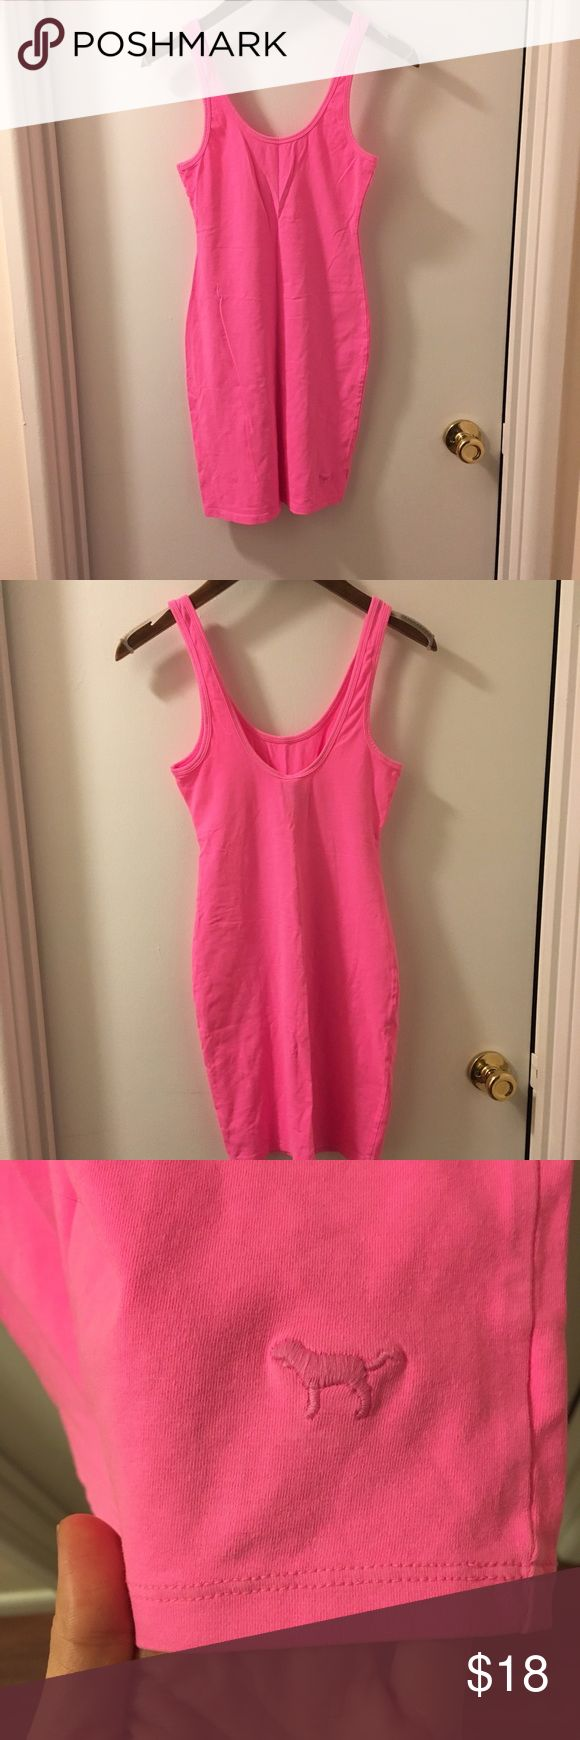 Pink dress ⚡️bogo 50% Pink fitted double scoop neck dress  NWOT never worn  Size xs Color hot pink  95% cotton, 5% elastane Will steam/iron before ship*  Limited time offer ⚡️bogo 50% off my closet discount on equal or lesser item PINK Dresses